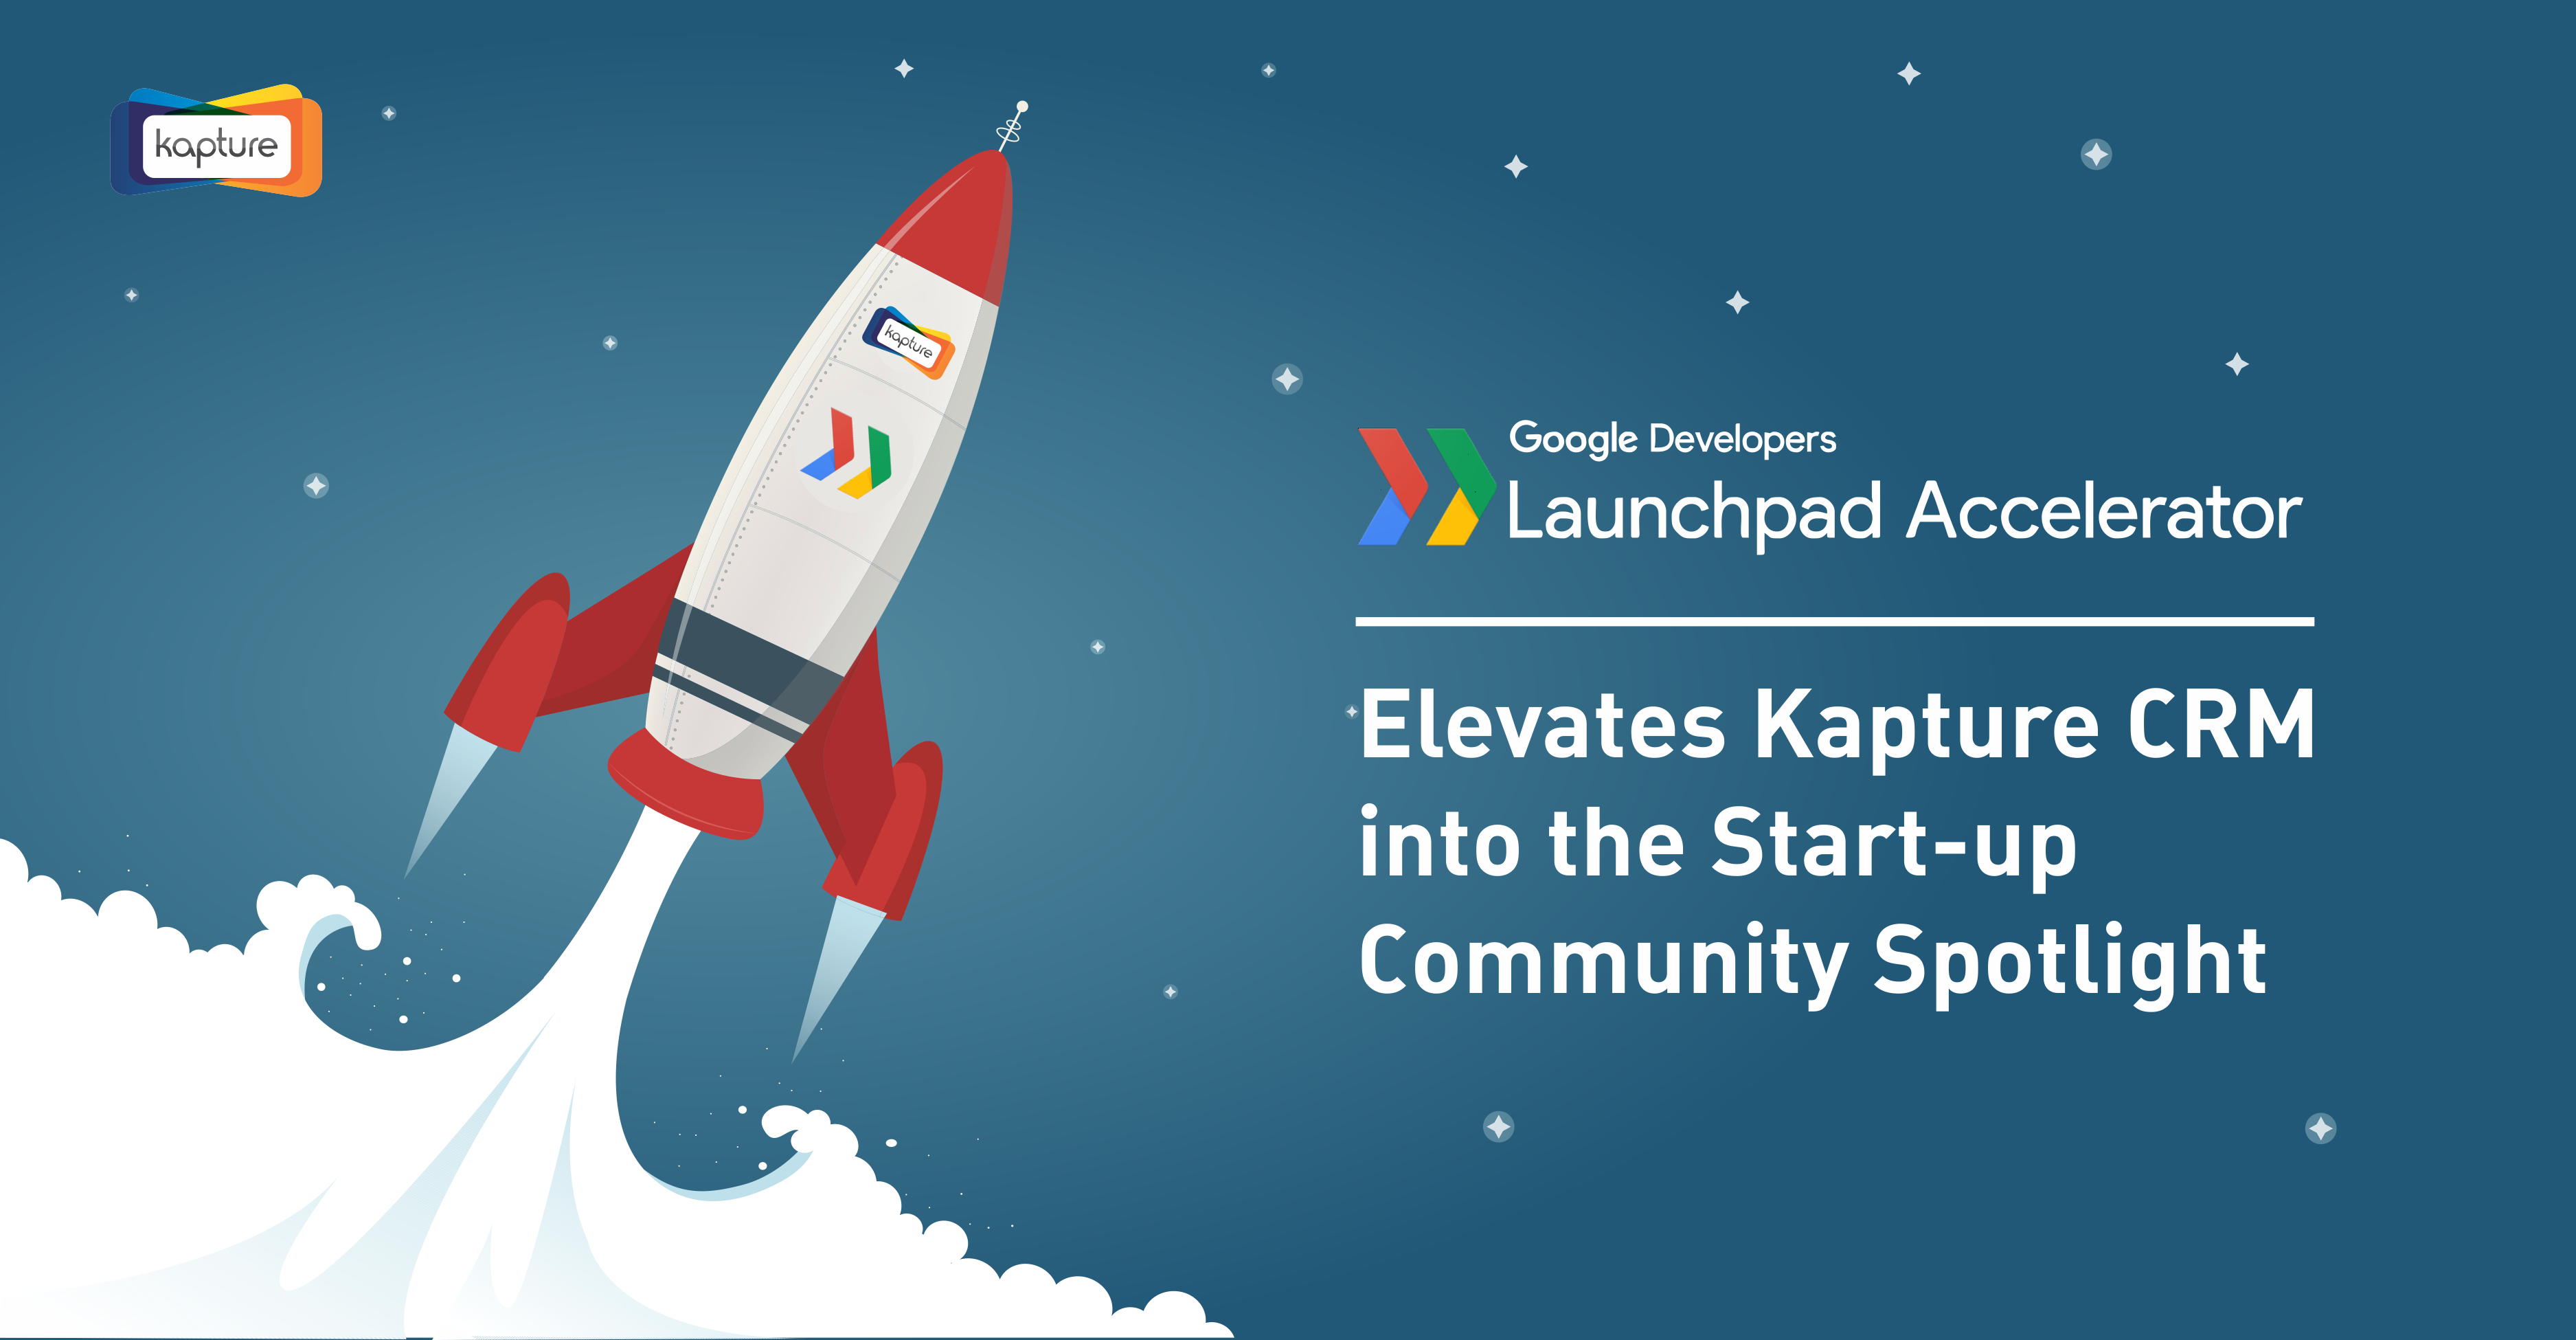 google India launchpad accelerator program